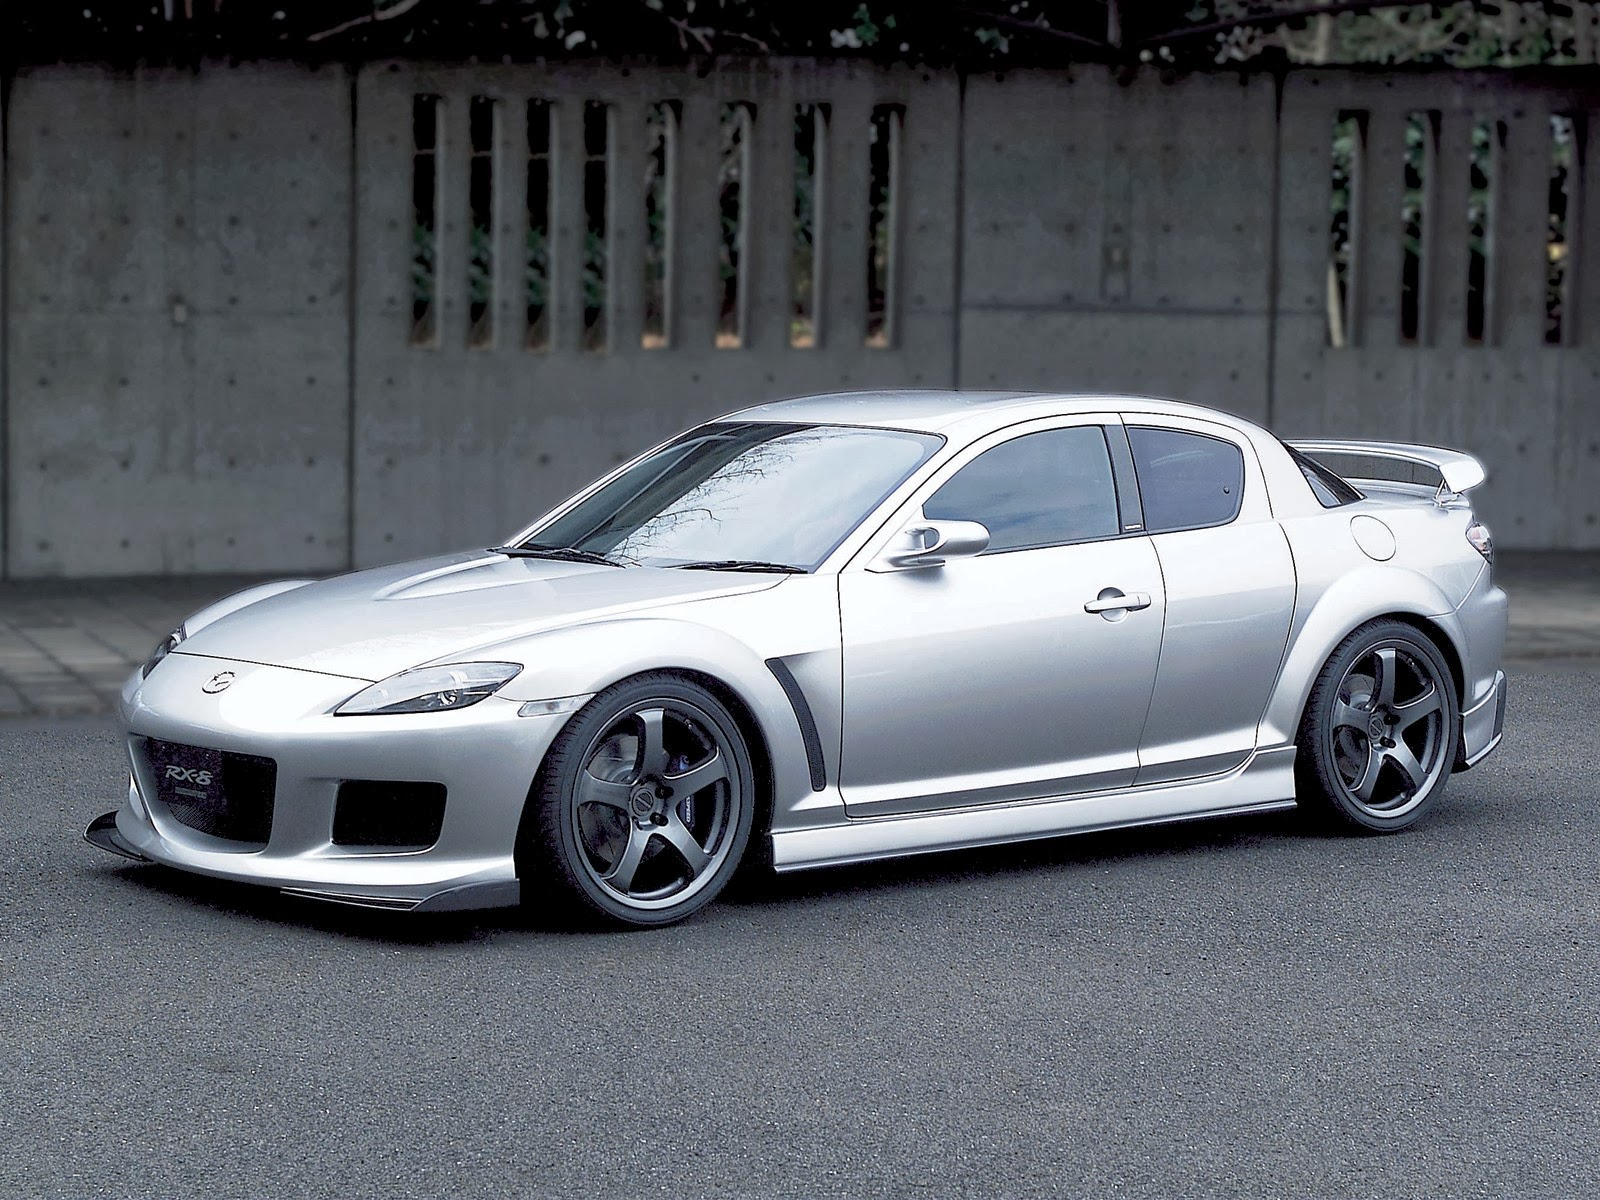 fast cars mazda rx 8 new sports car. Black Bedroom Furniture Sets. Home Design Ideas